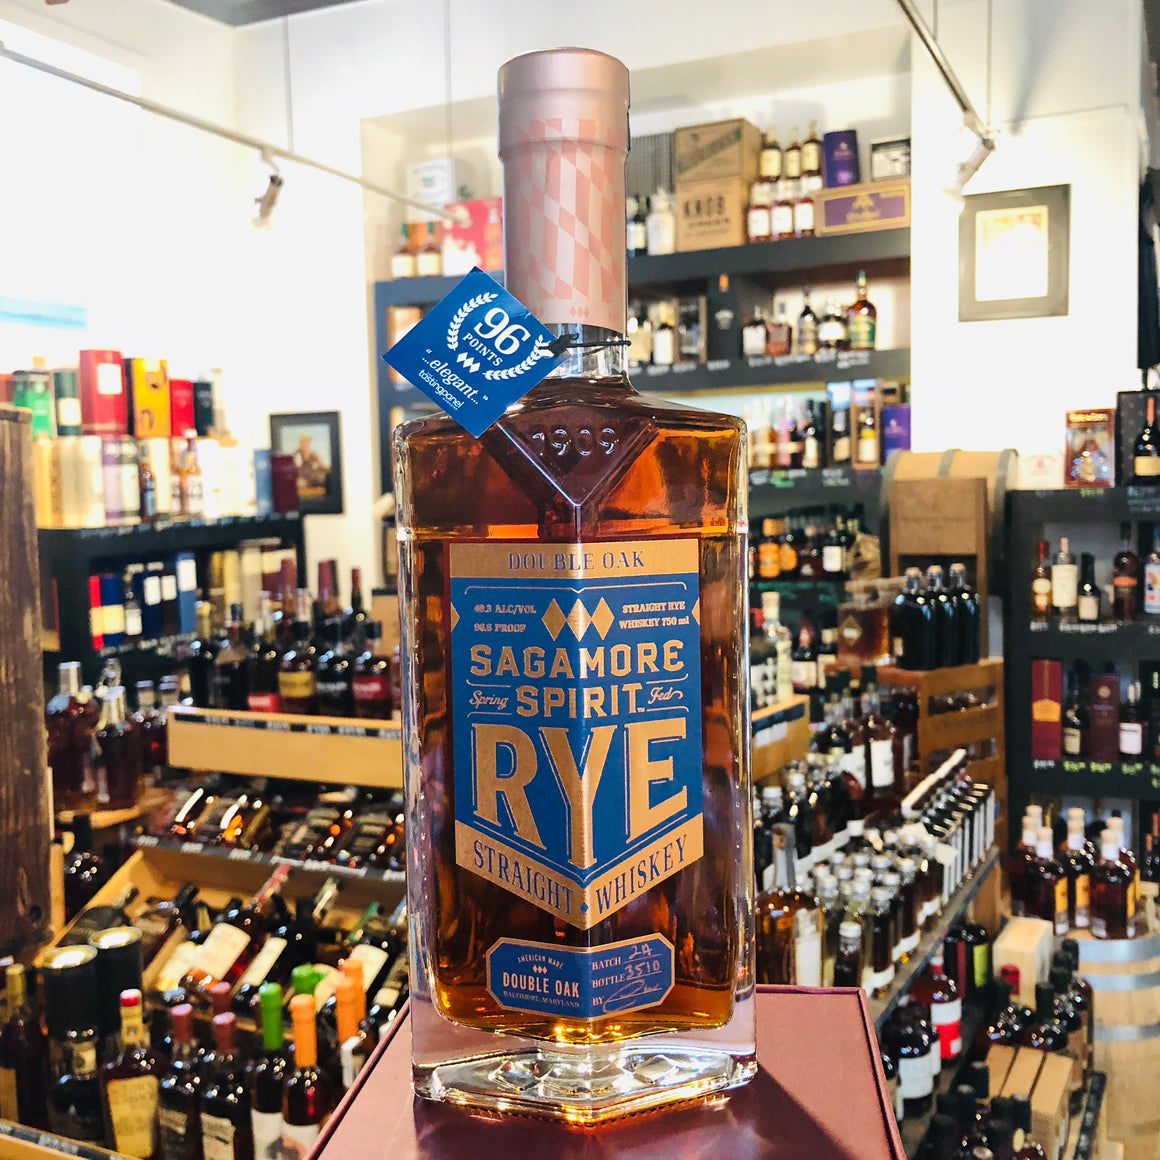 SAGAMORE DOUBLE OAK STRAIGHT RYE WHISKEY 750ML